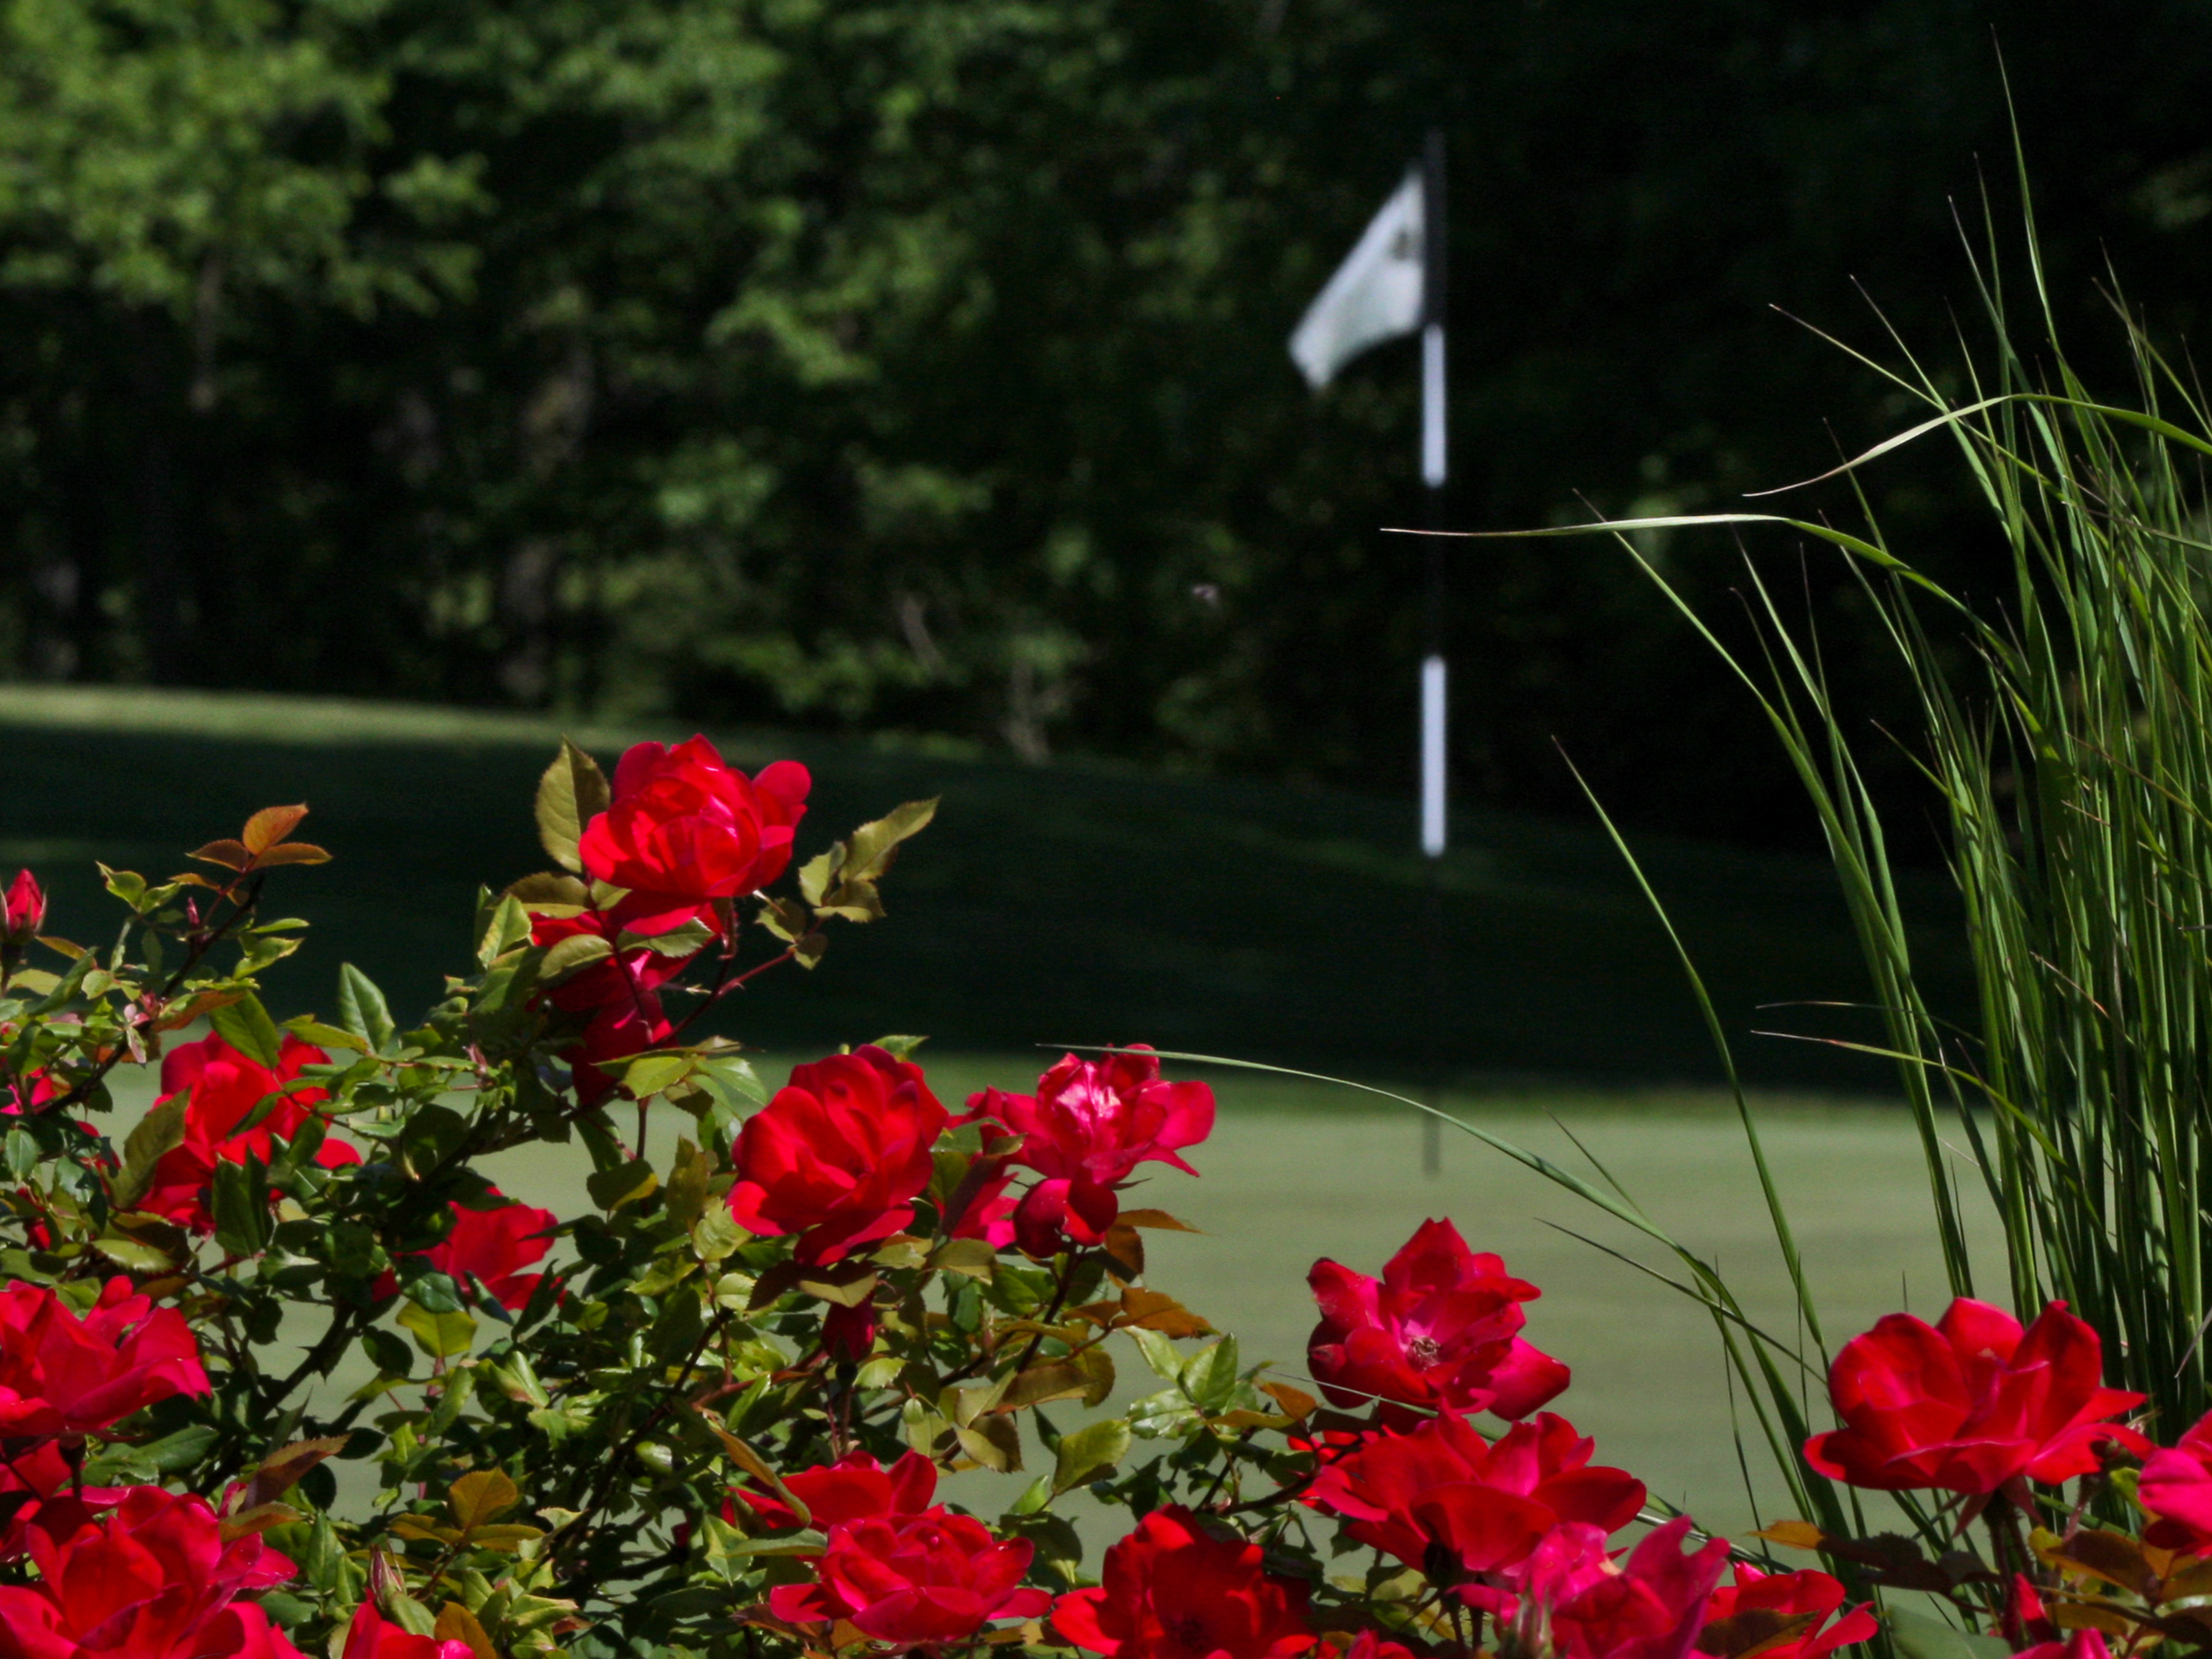 Flowers at the Blue Ash Golf Course